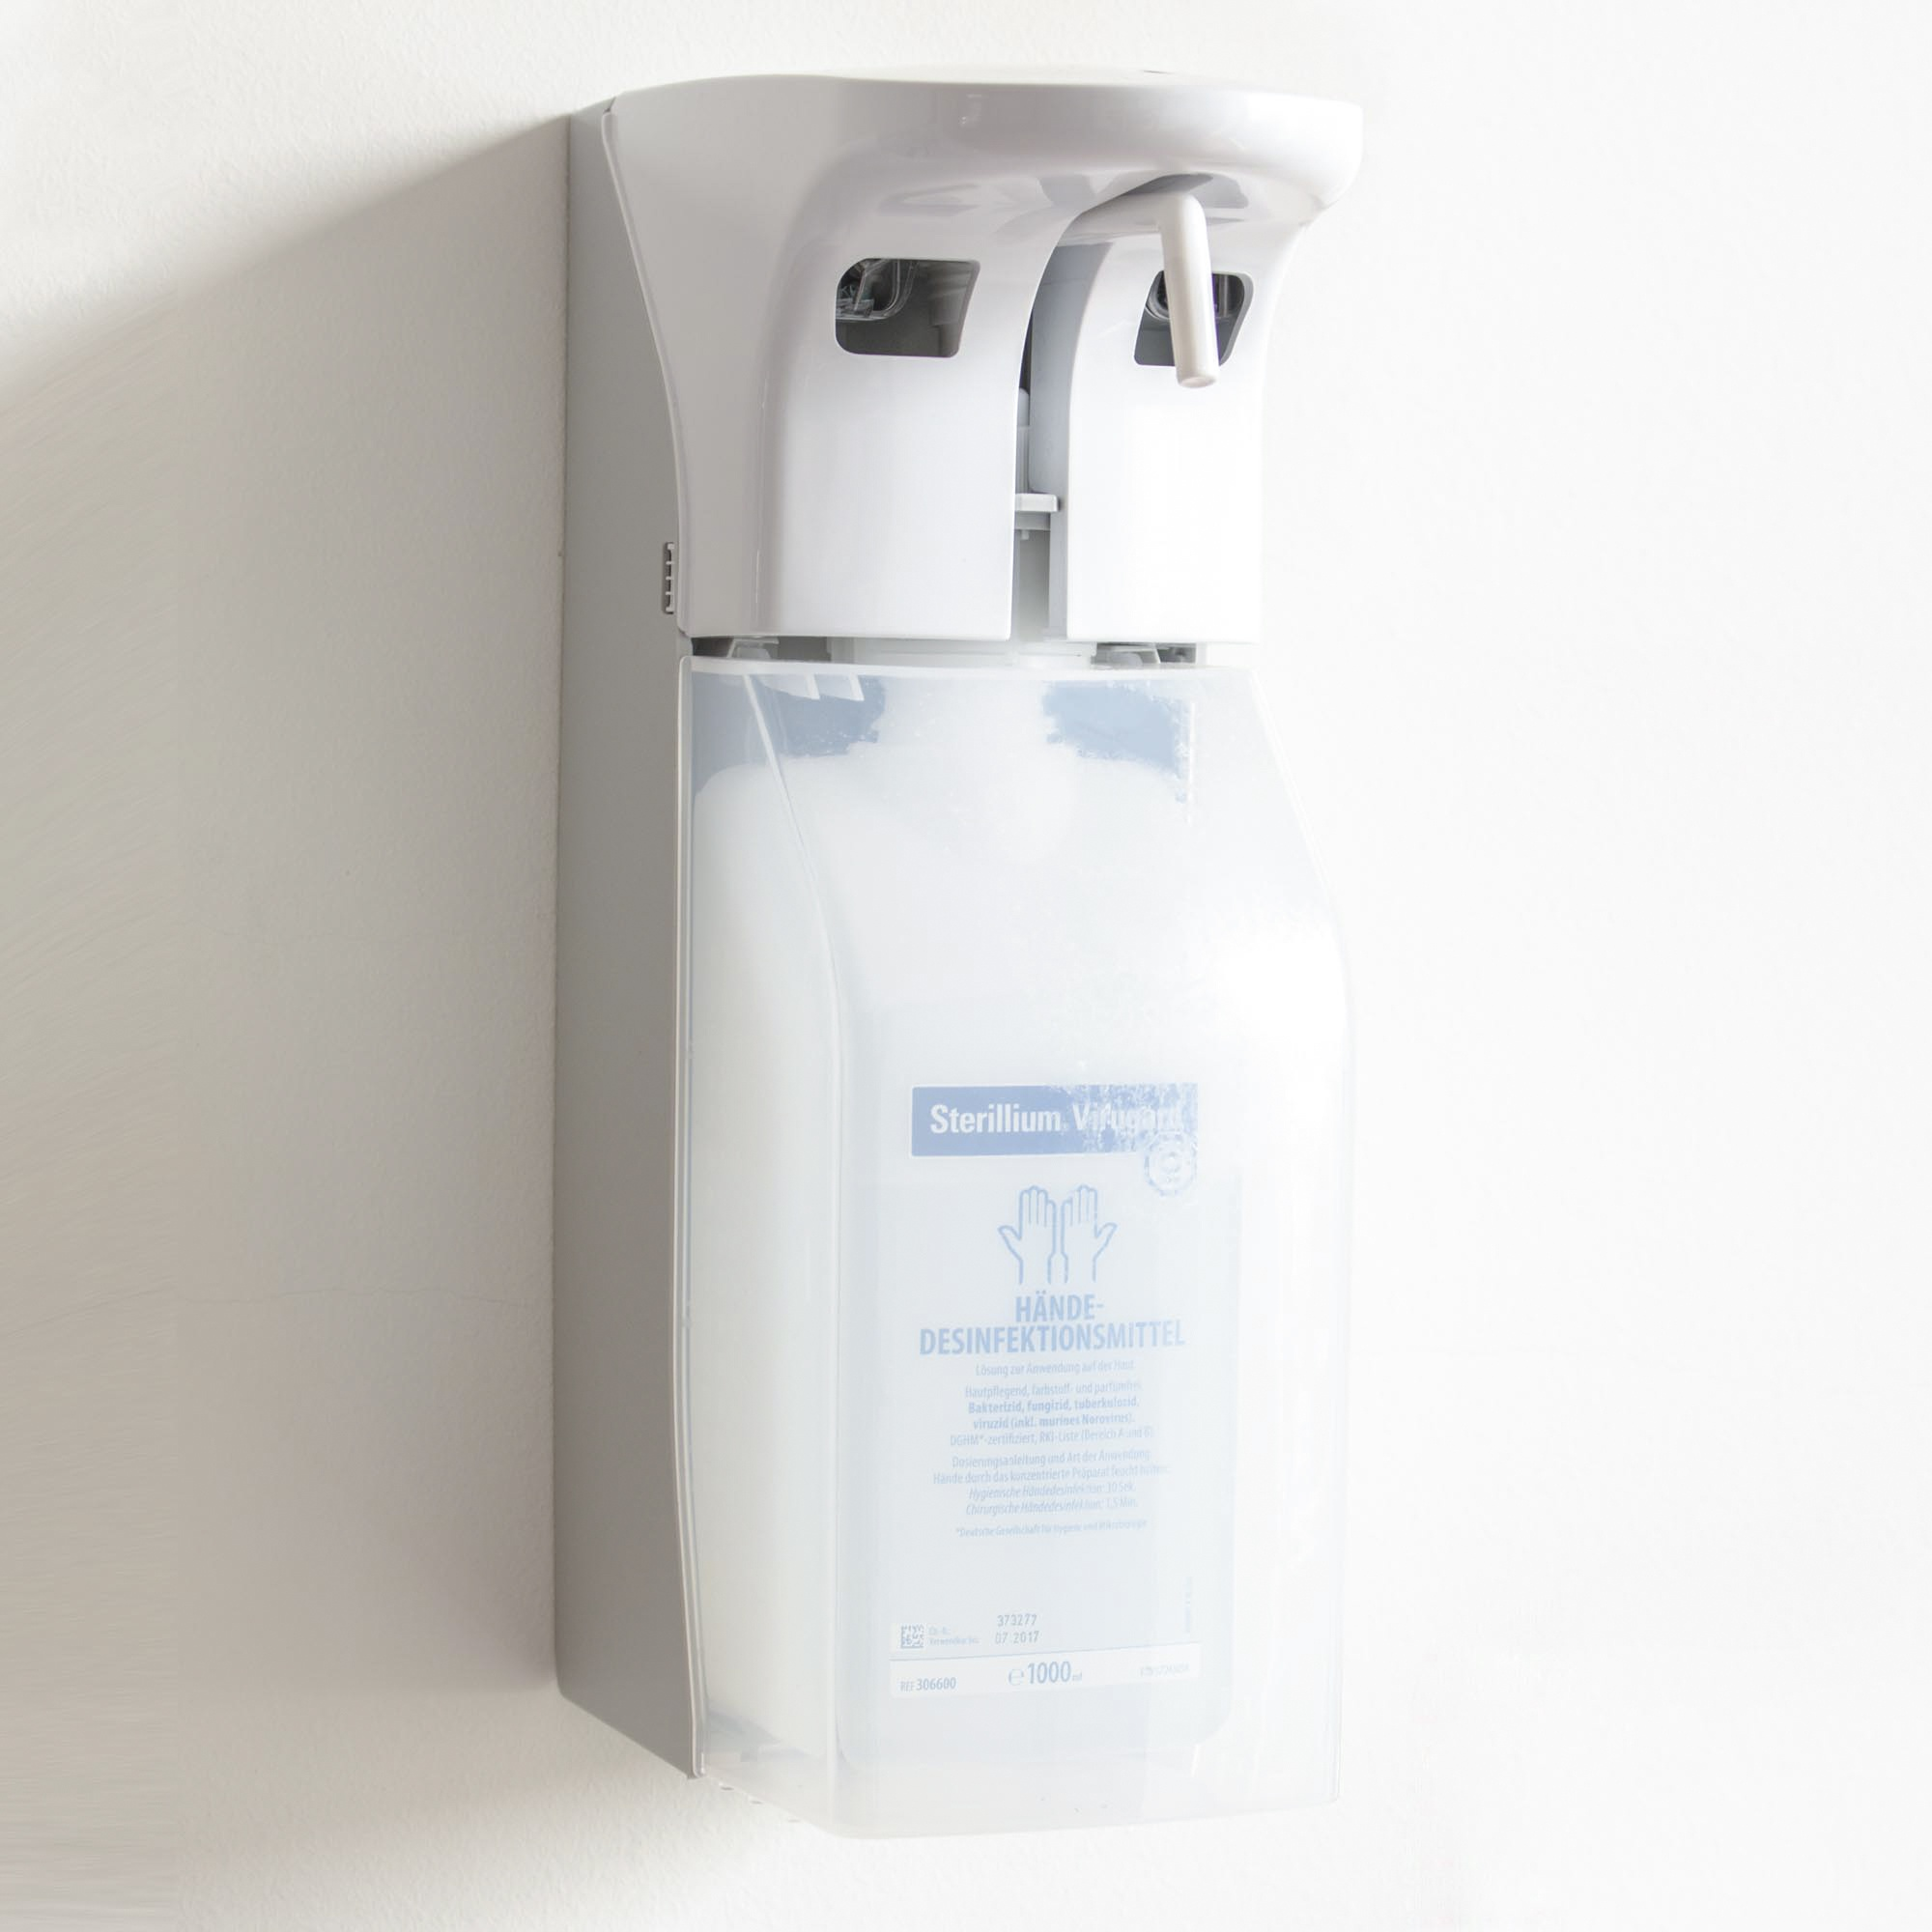 Touchless disinfection unit Image